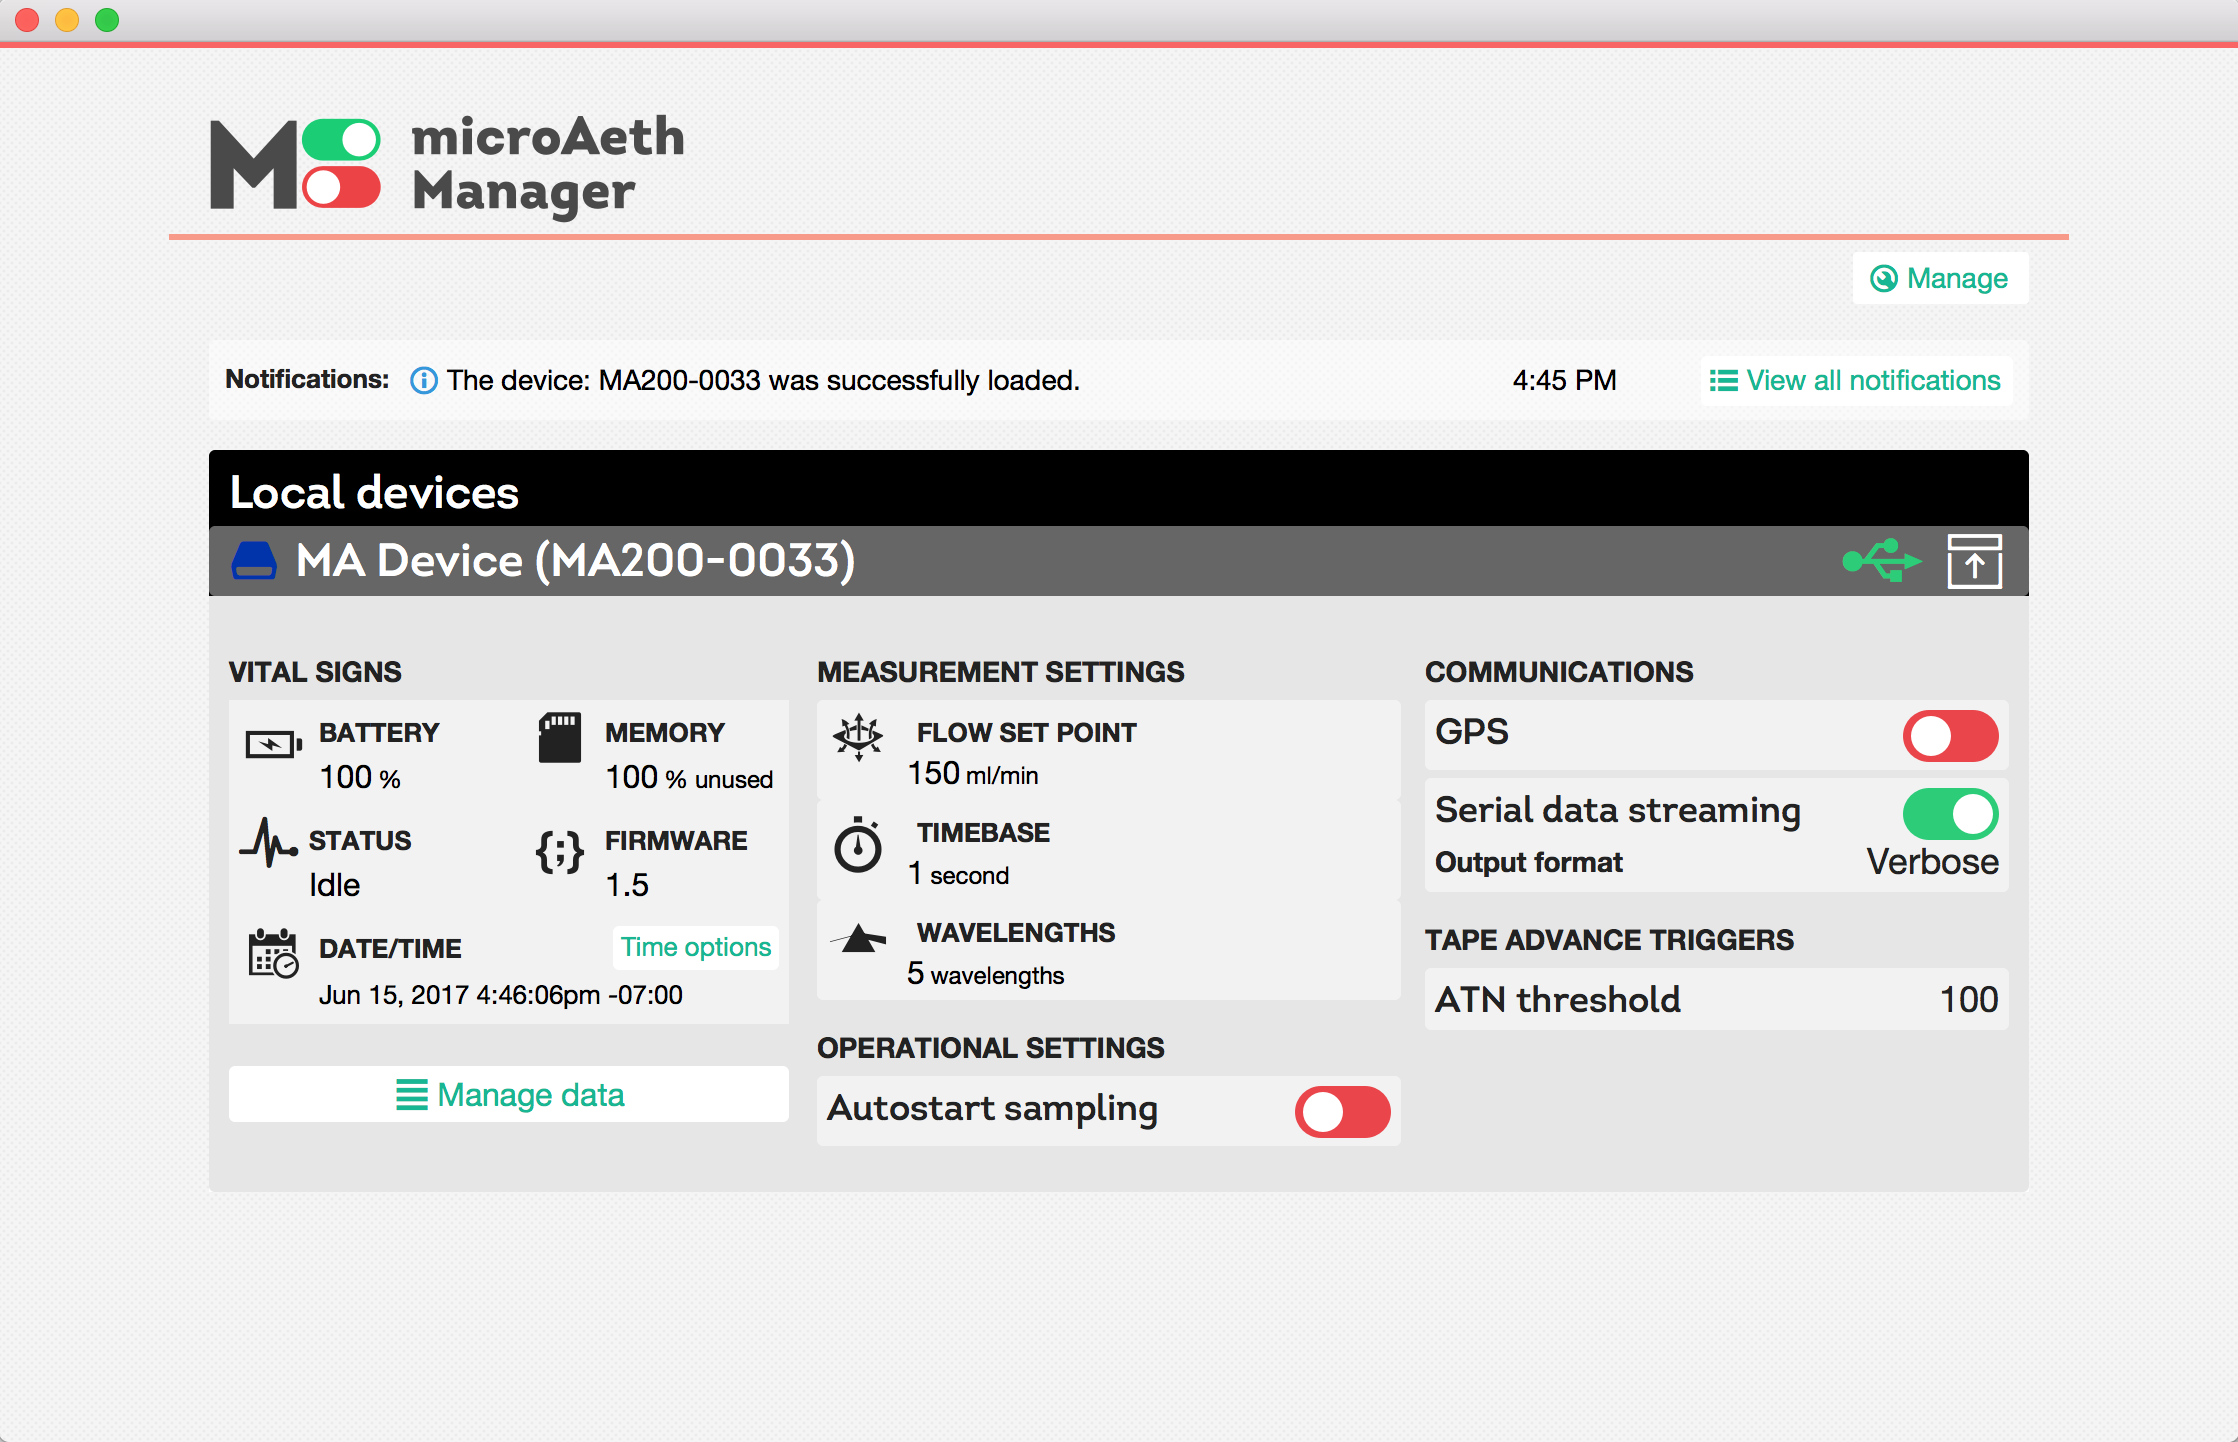 microAeth Manager screenshot